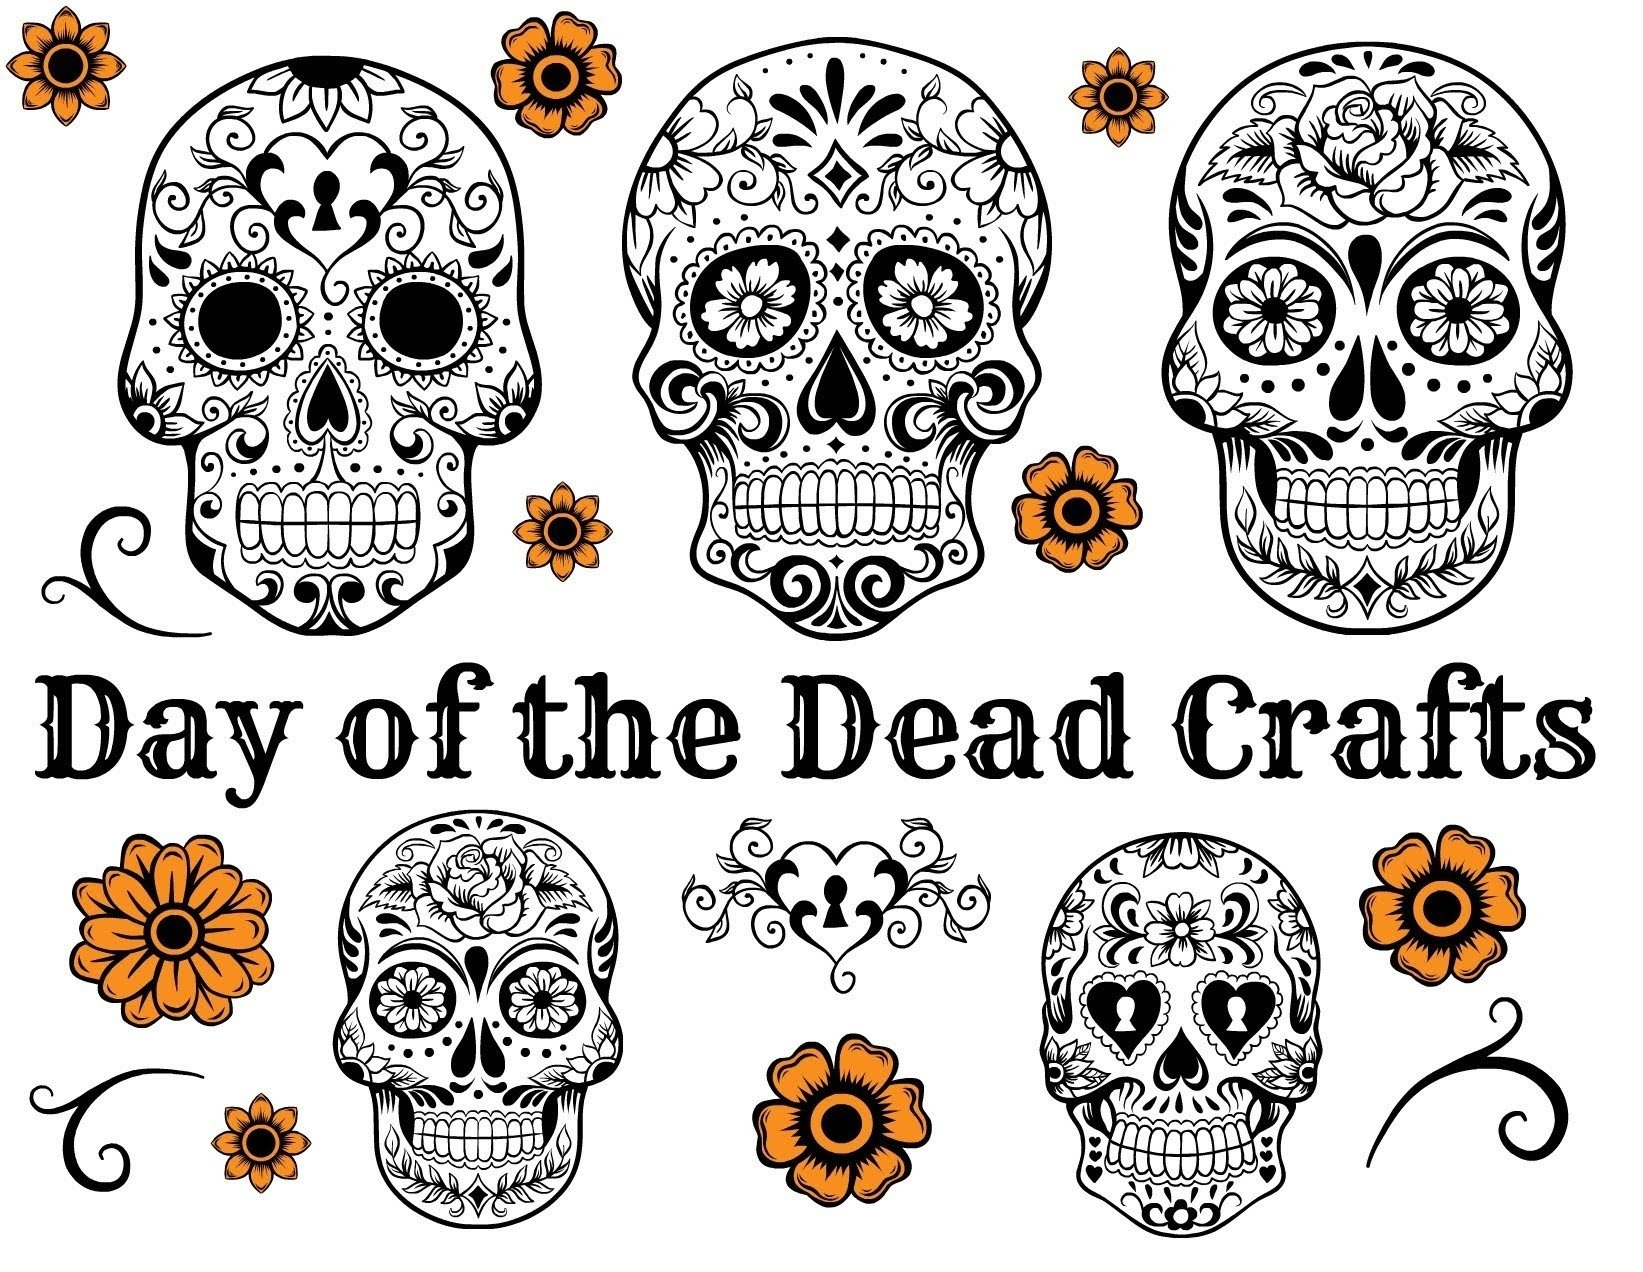 10 Famous Day Of The Dead Craft Ideas day of the dead crafts youtube